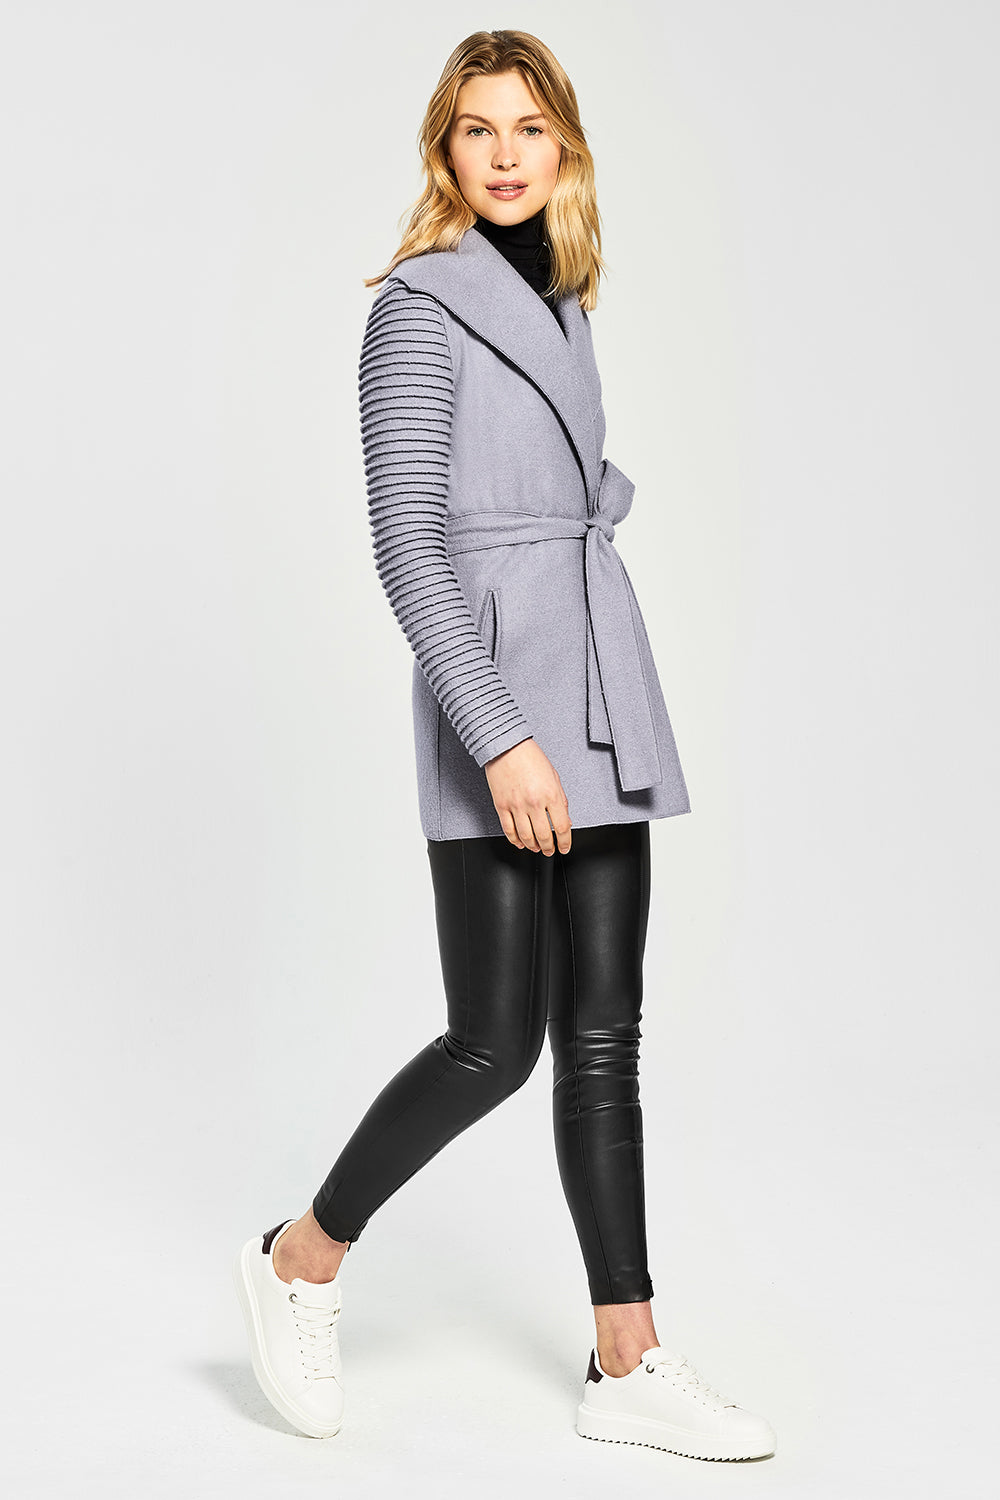 Sentaler Wrap Coat with Ribbed Sleeves featured in Superfine Alpaca and available in Gull Grey. Seen from side.